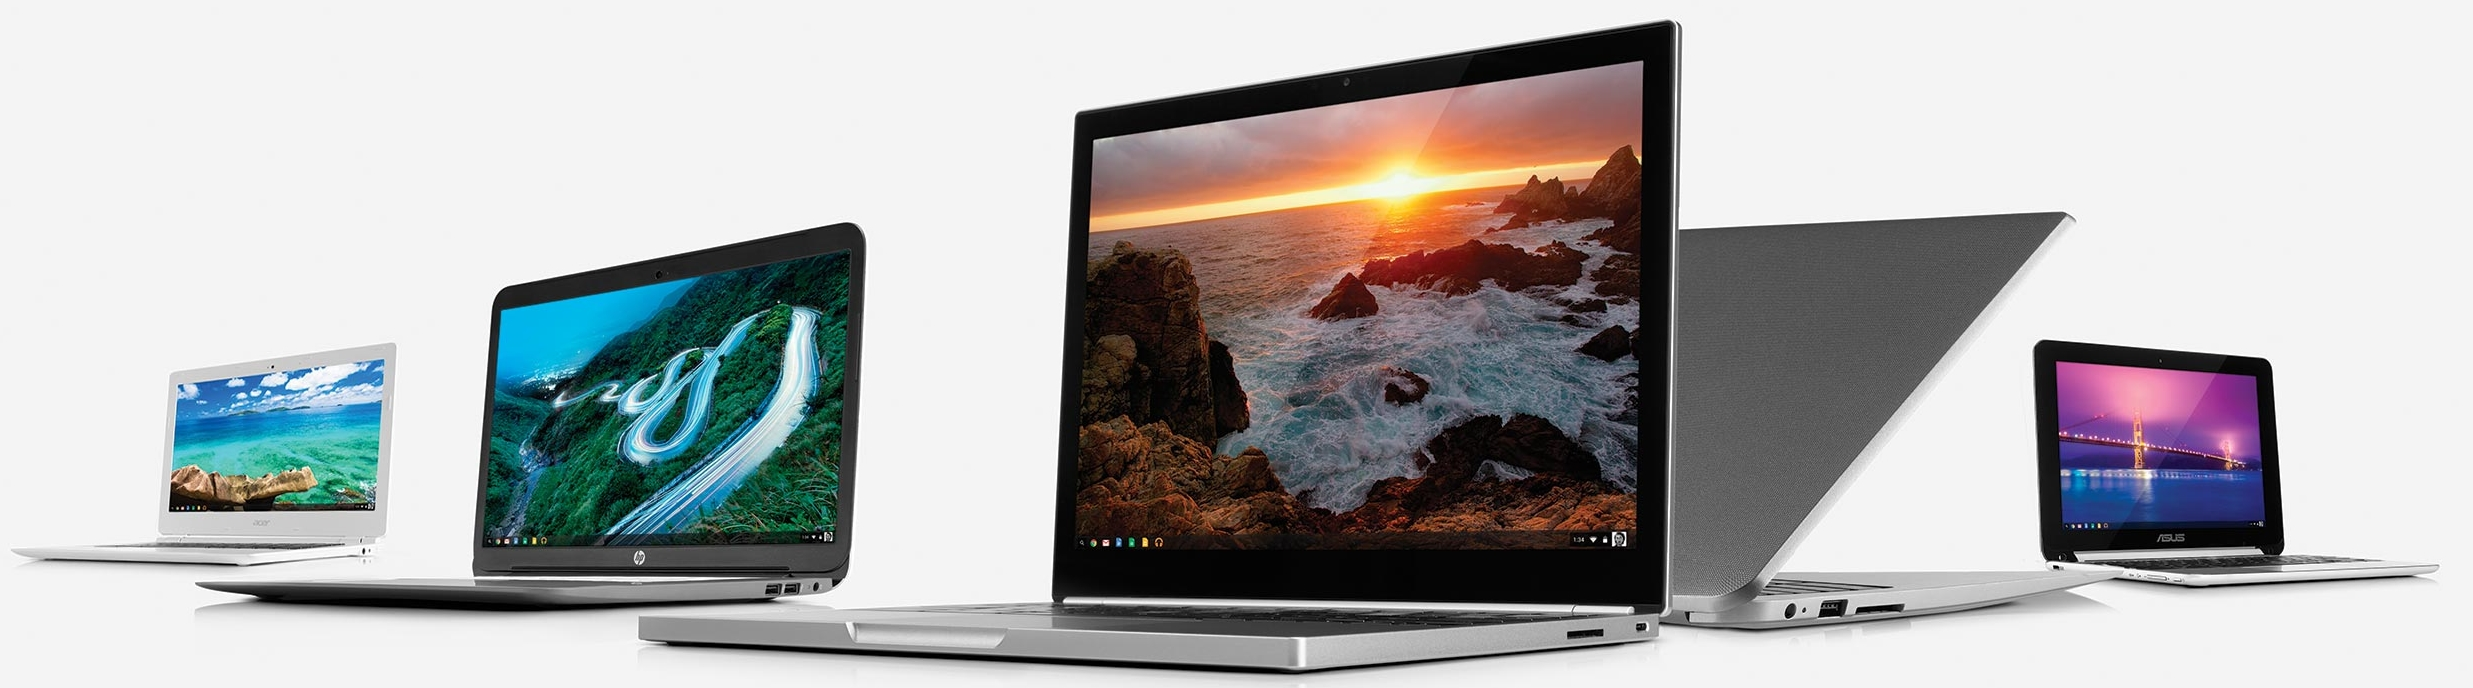 Chrome OS to Merge with Android from Next Year